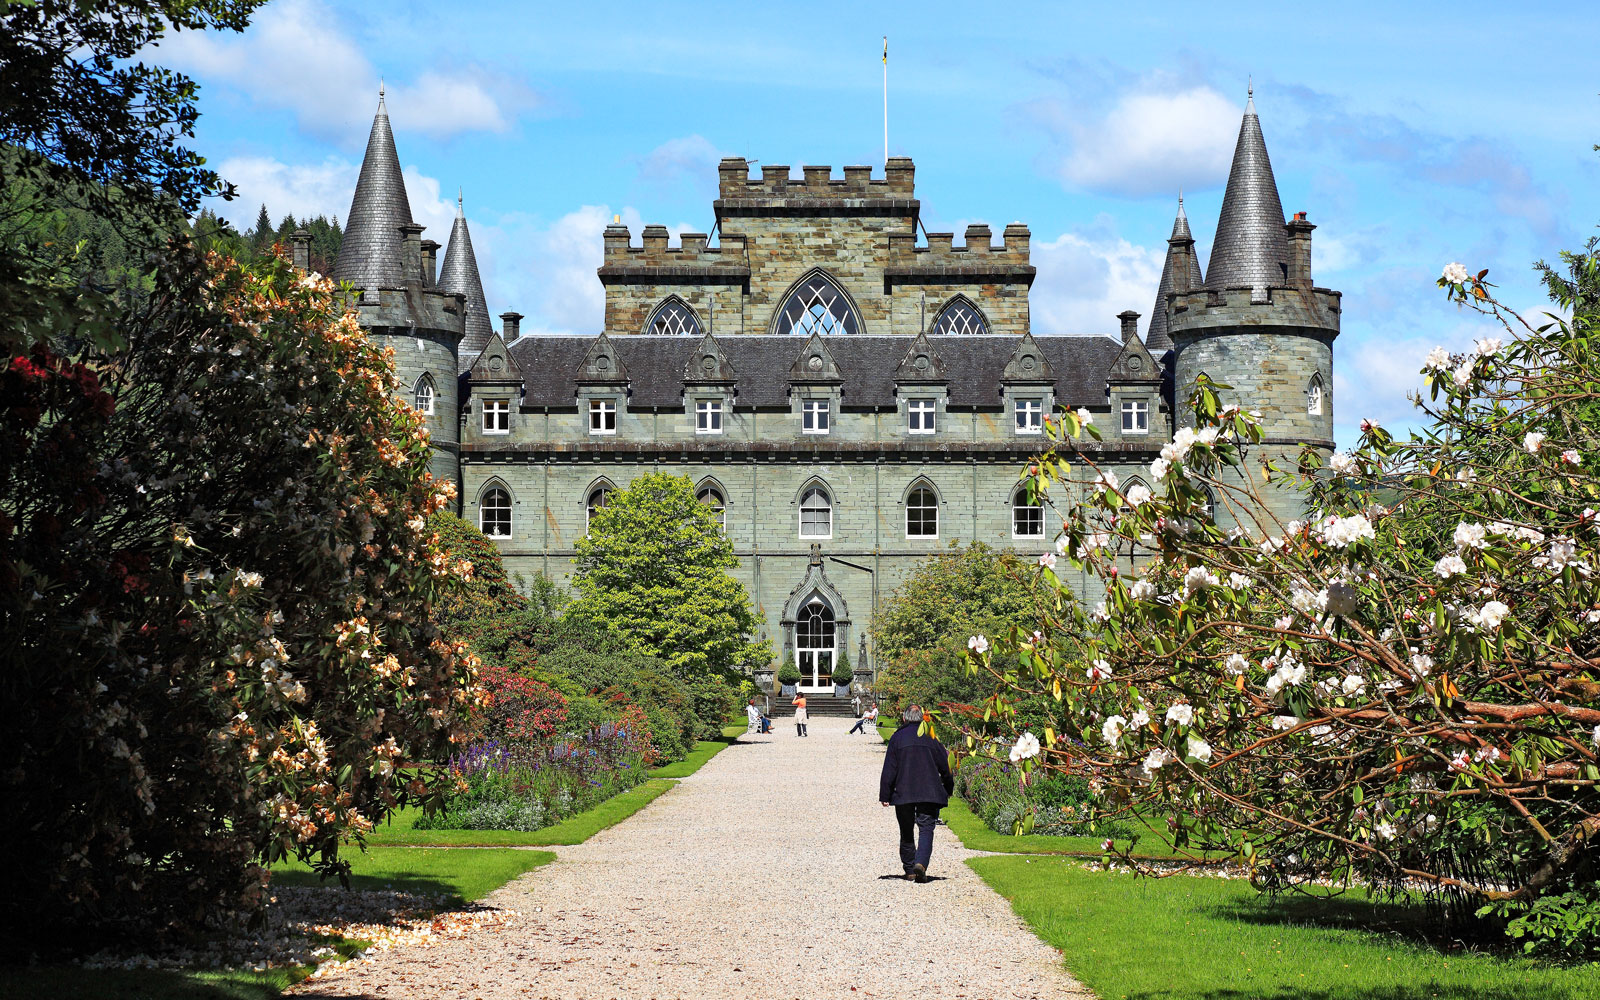 Inveraray Castle in Scotland